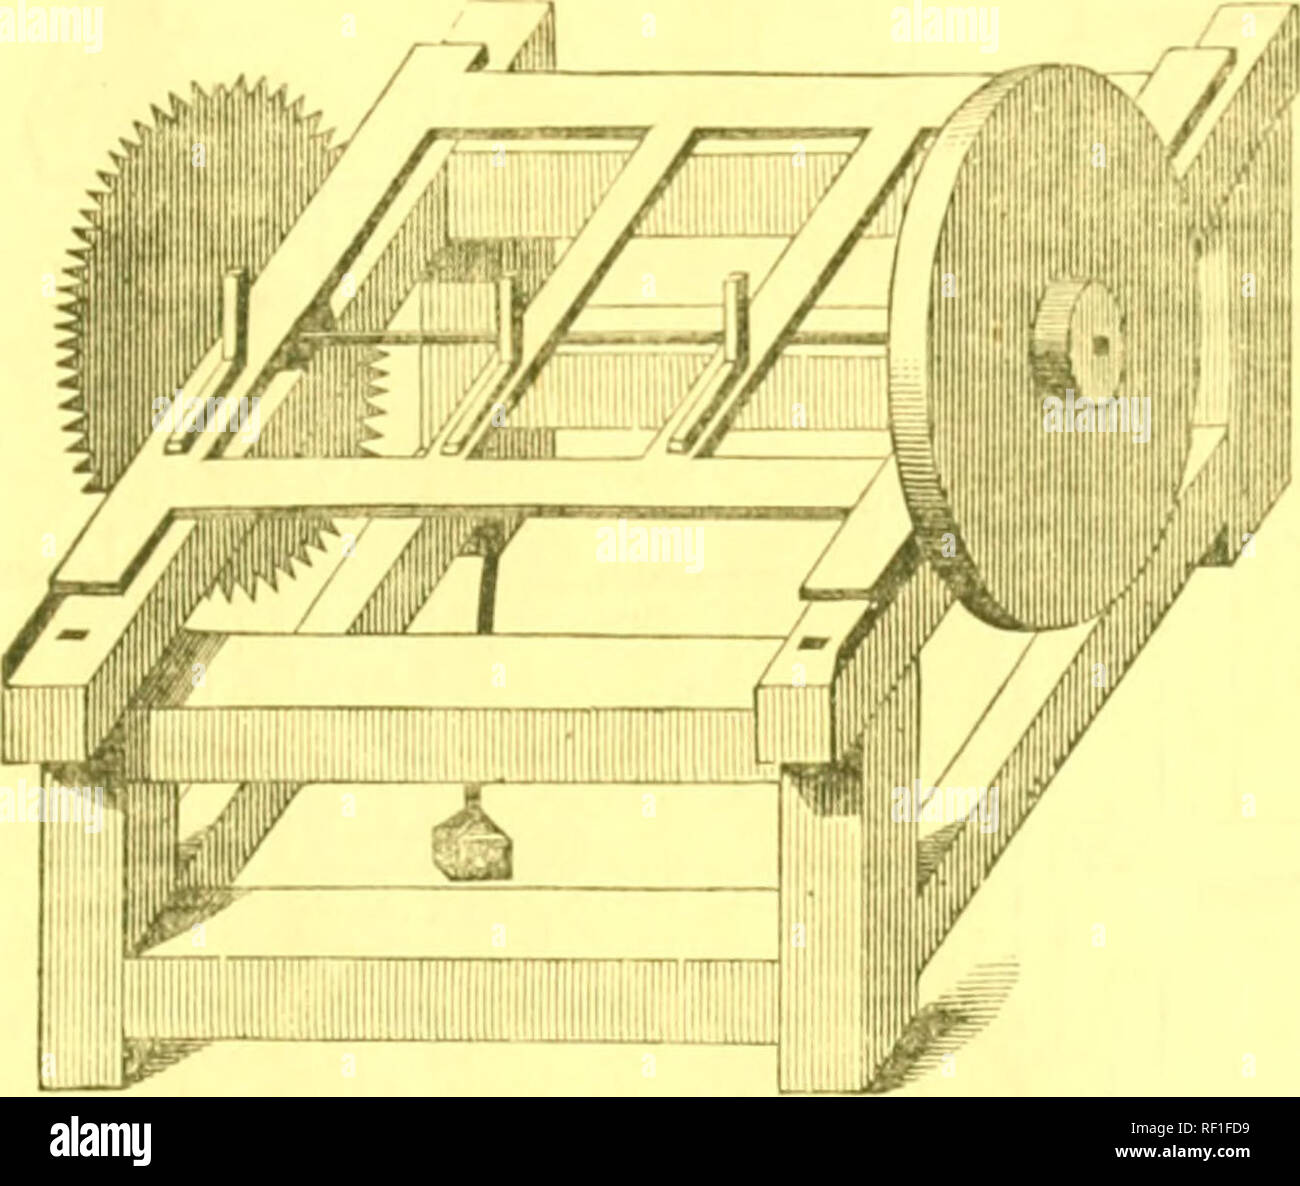 . Catalogue of agricultural and horticultural implements ... APPENDi:?. Wood-Sawing Machine for CuTTrrjH Fuel. 107. The subjoined cut showsa machine in gen- i-ral use for sawin<j;  ood. It is easily driv- (M by a one-horse chain power, and is capable of sawing sev(;ral cords of wood per day. 11 is simple and easily worked and kept in or- der. Others, of larger di- mensions, are used for slitting plank, boards, Fig. 157. scantling, &c. For this purpose, a different saw is required than when used for cutting across the grain. For the last purpose, the teeth are triangular ; for the form - Stock Image